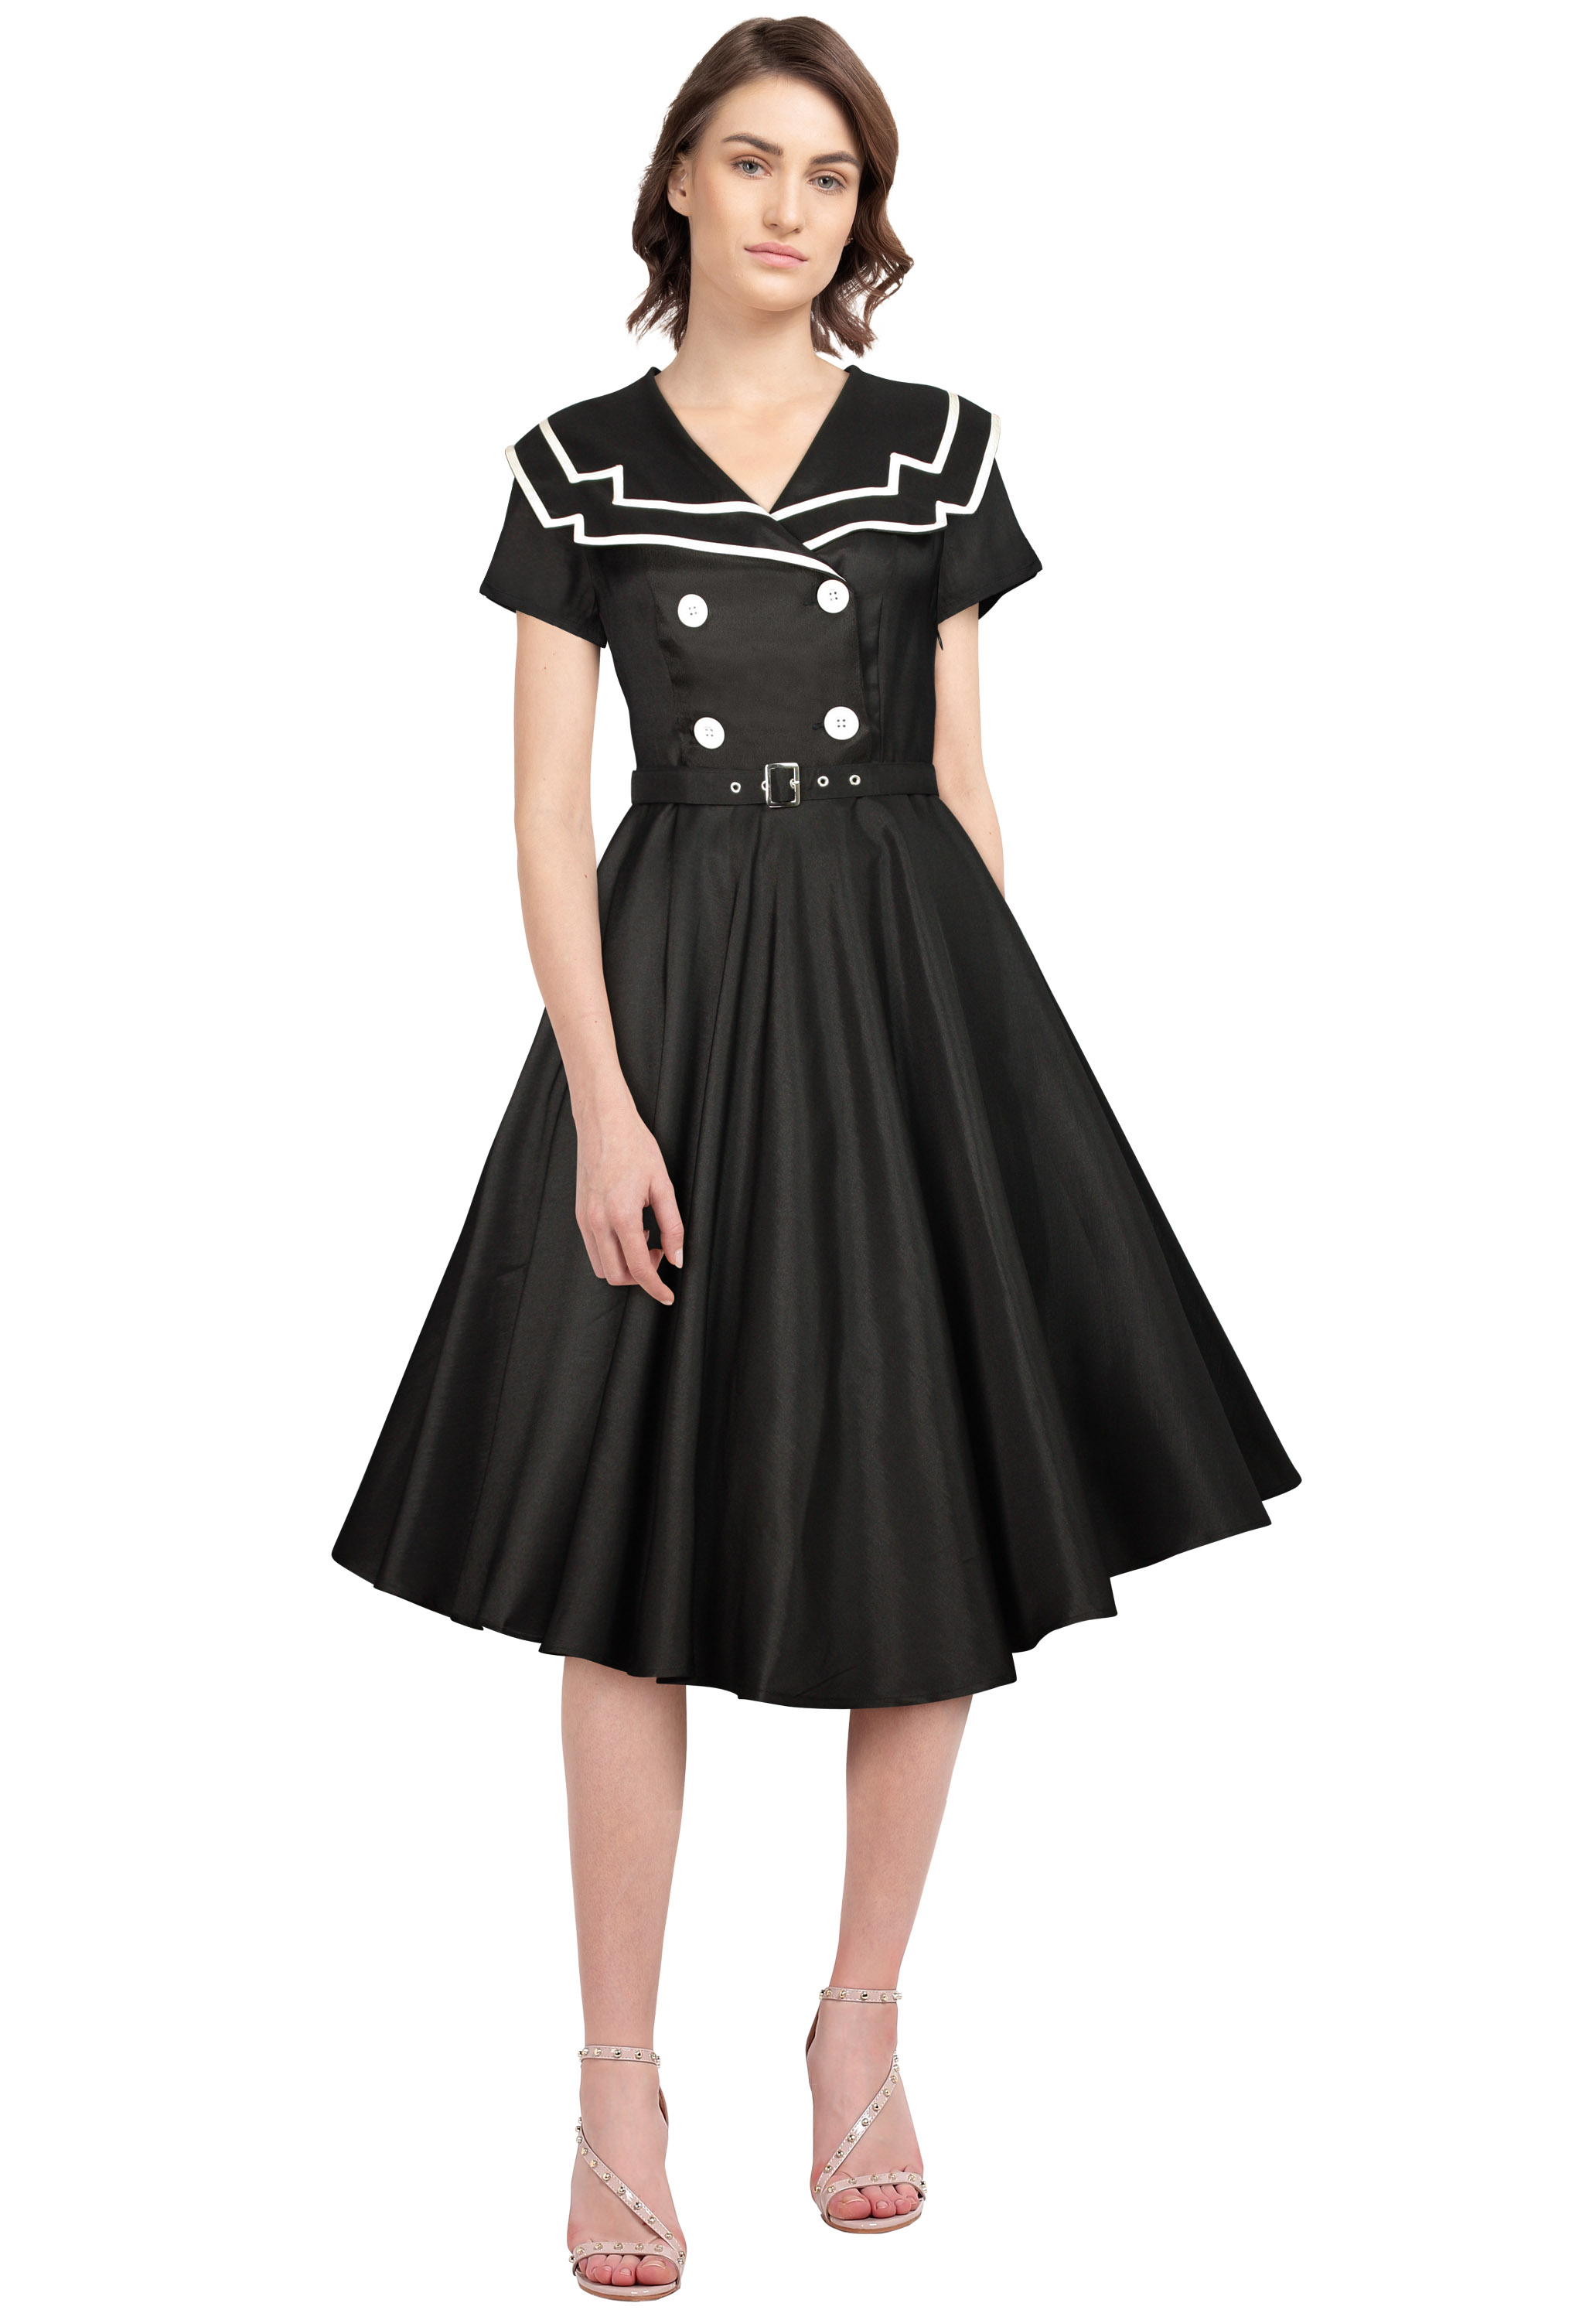 Vintage Inspired Swing Dresses, Skirts and Pants